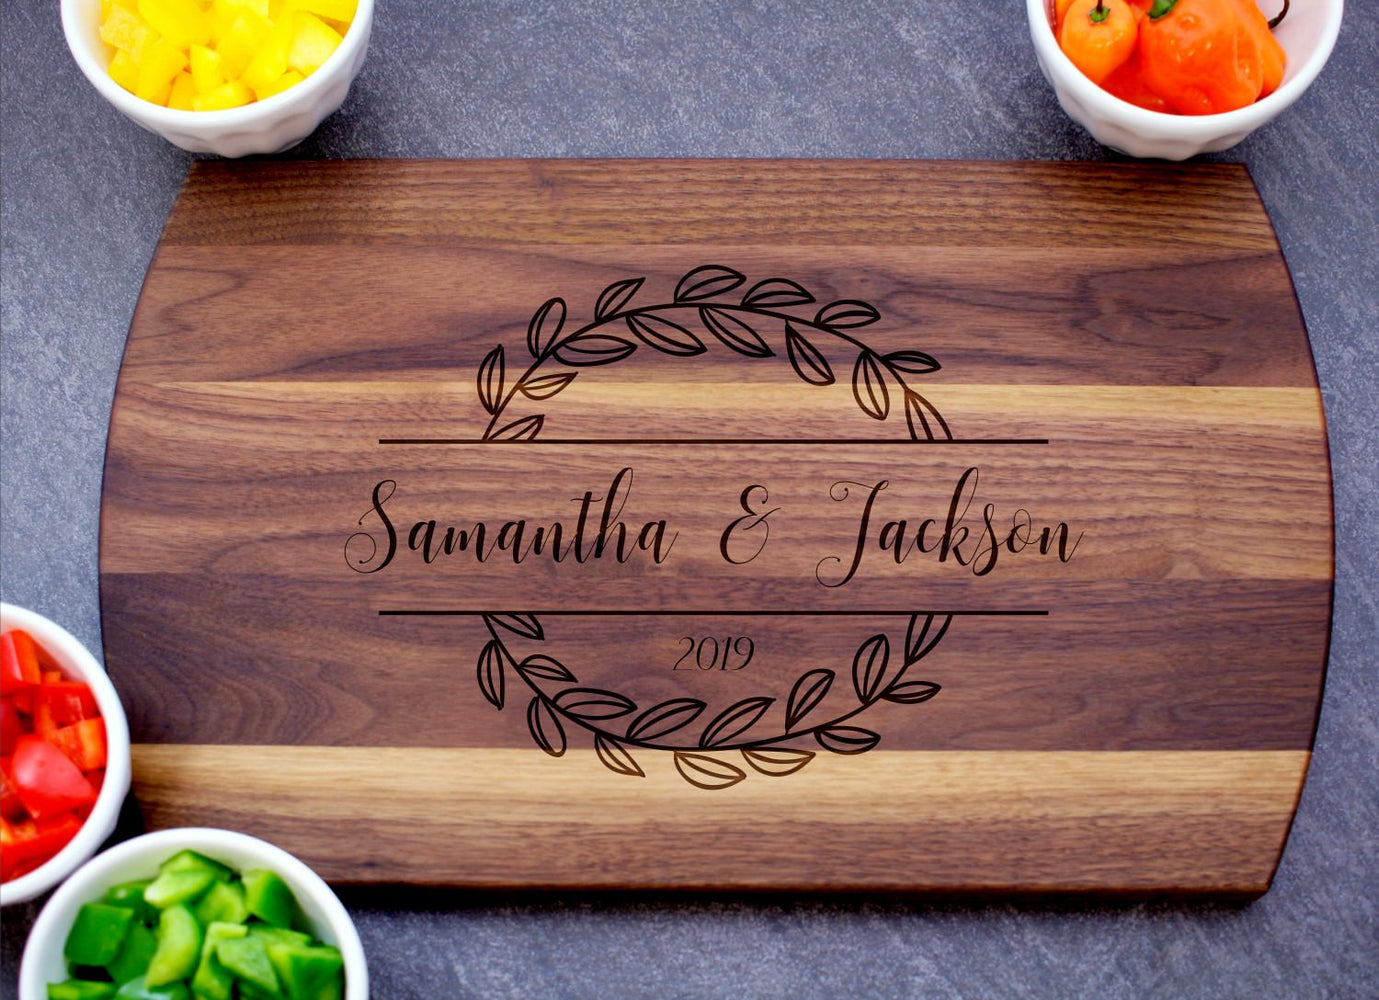 New Leaf | Personalized Laser Engraved Cutting Board